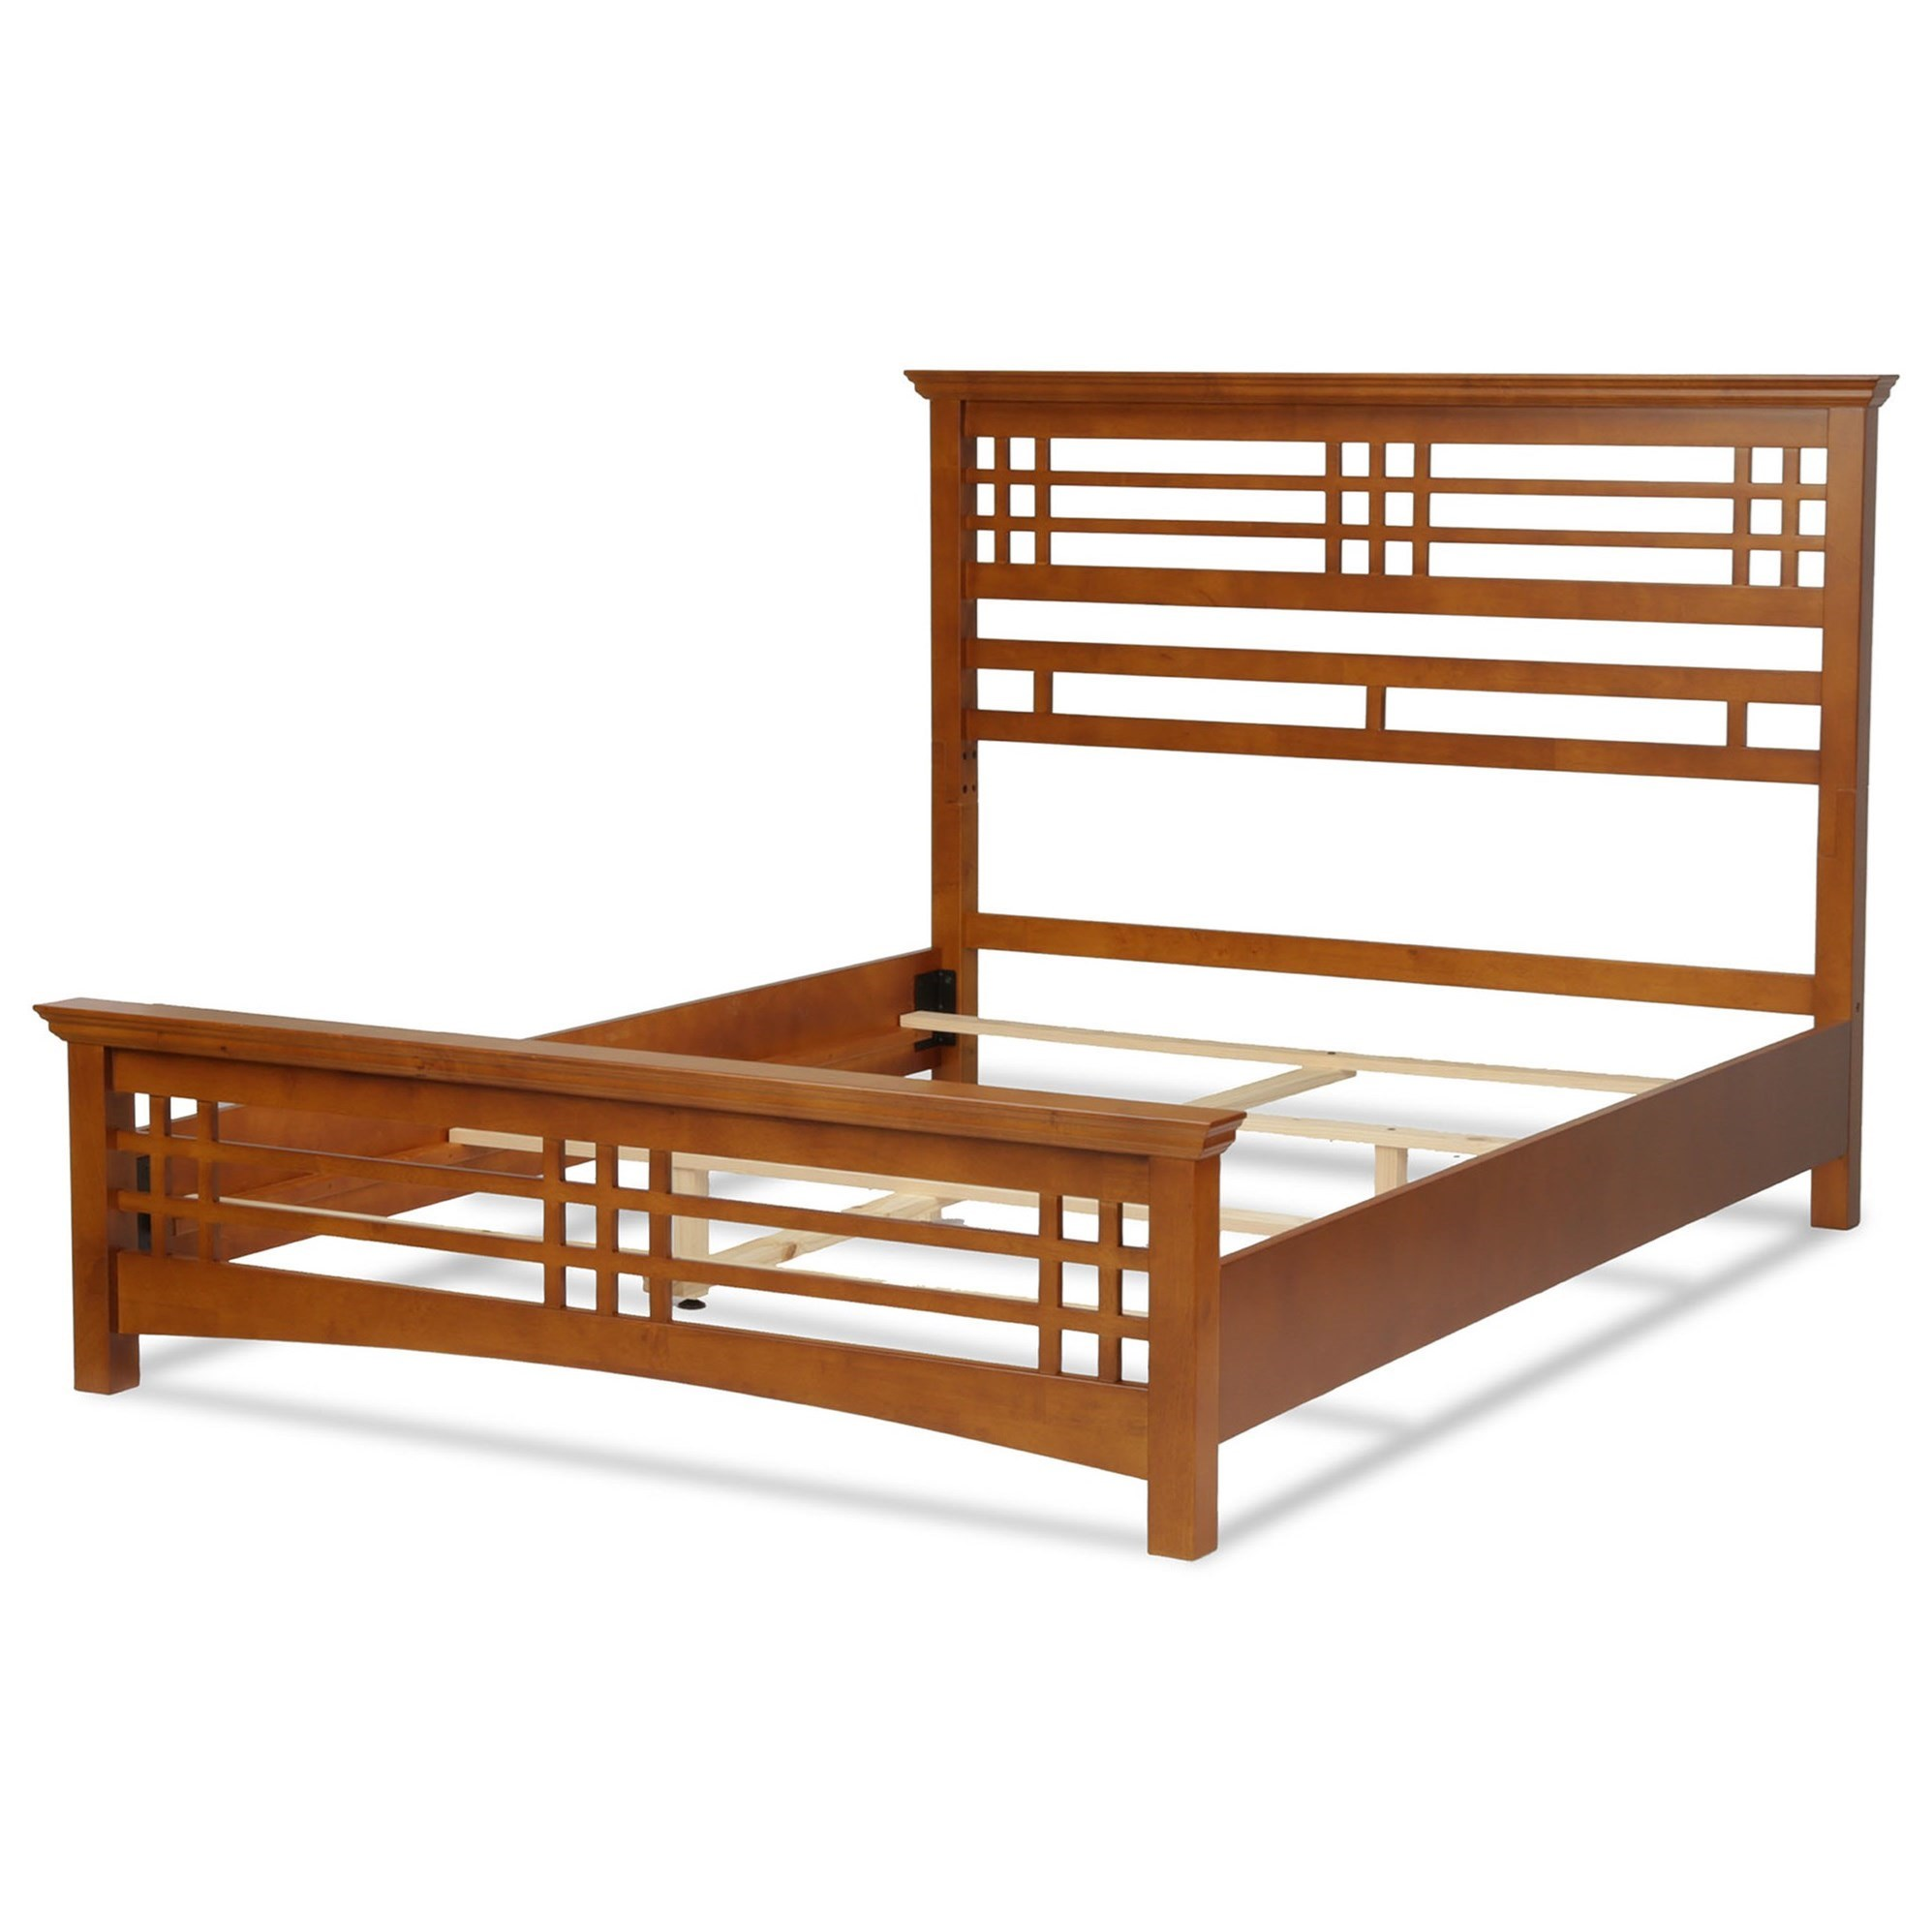 Fashion Bed Group Wood Avery King Bed - Item Number: B51A96